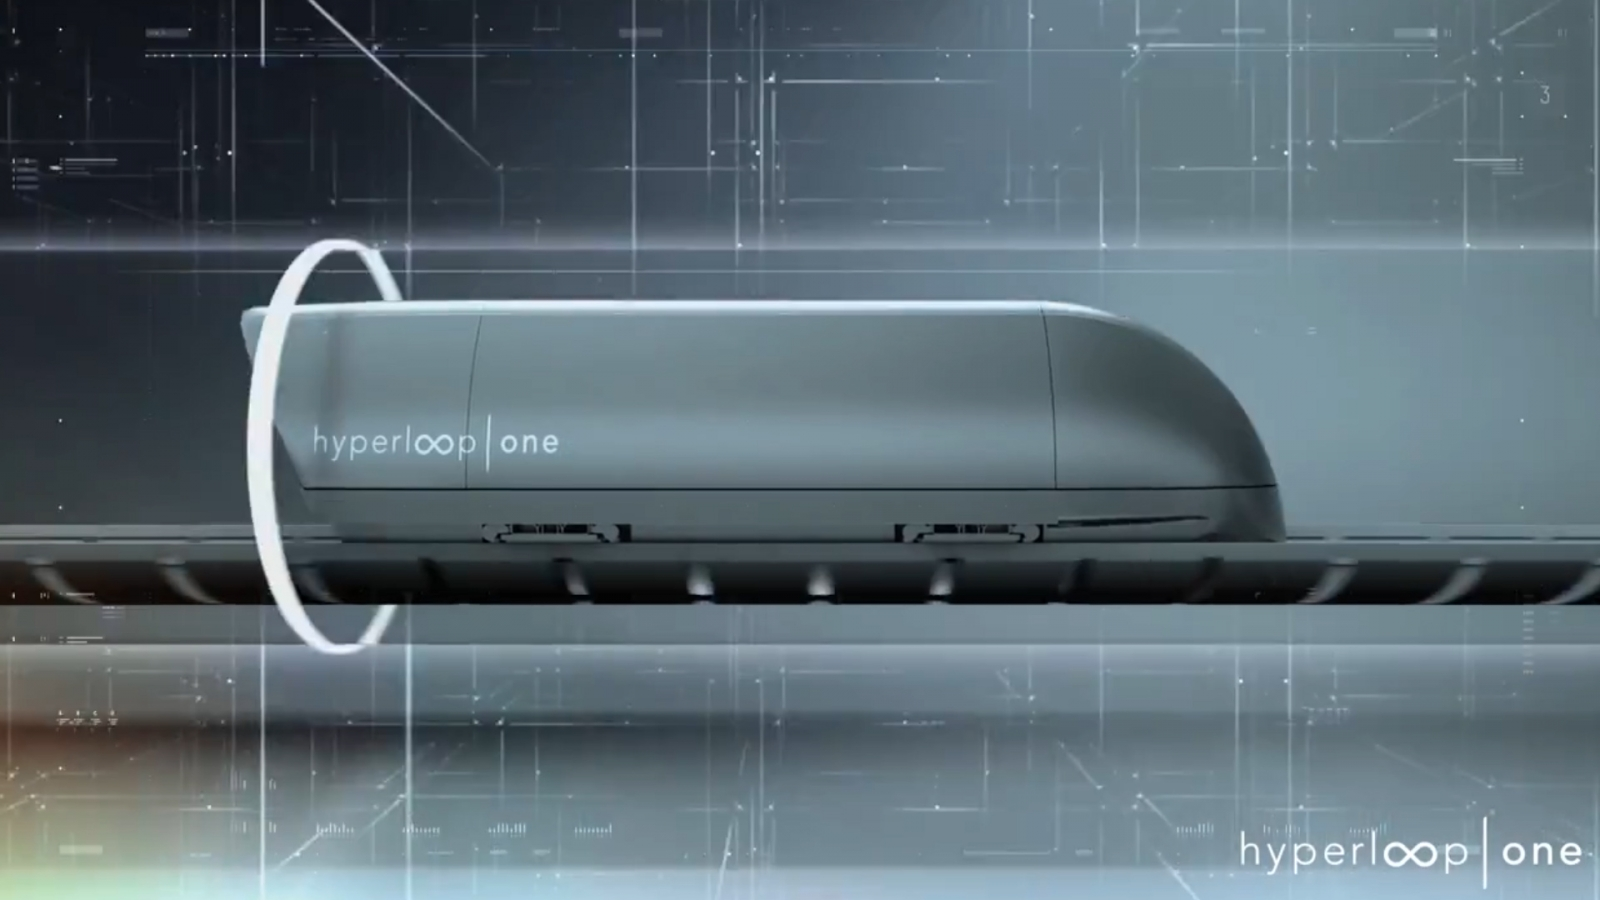 elon-musk-dream-closer-to-reality-as-hyperloop-one-passenger-pod-reaches-192-mph-on-latest-test-run